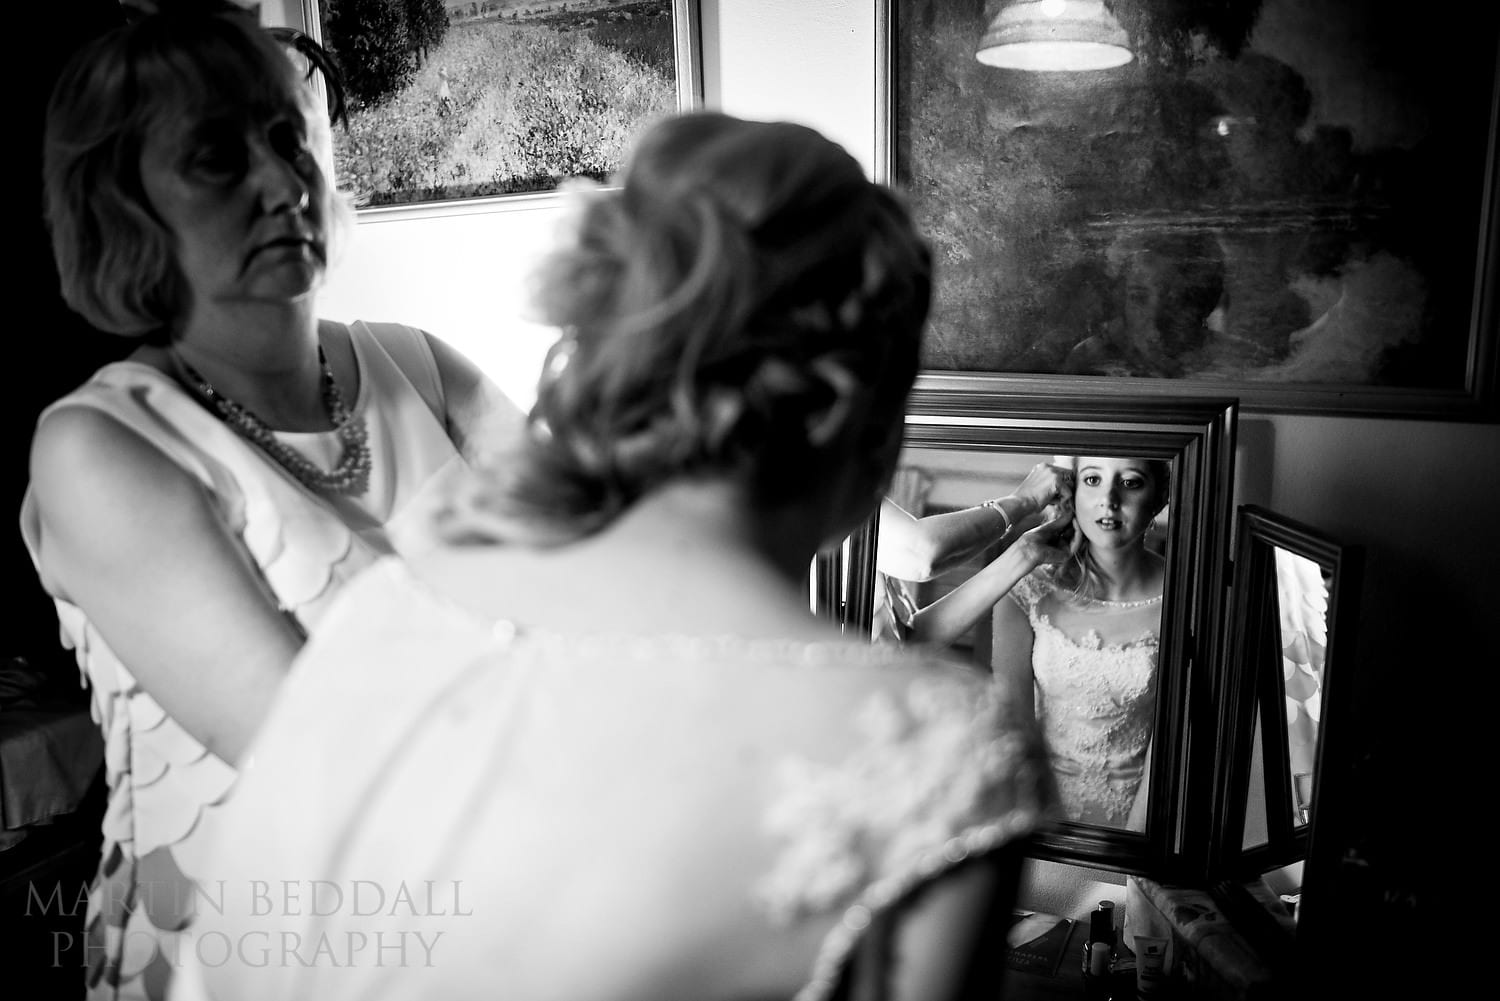 Bride getting ready with help from her mother